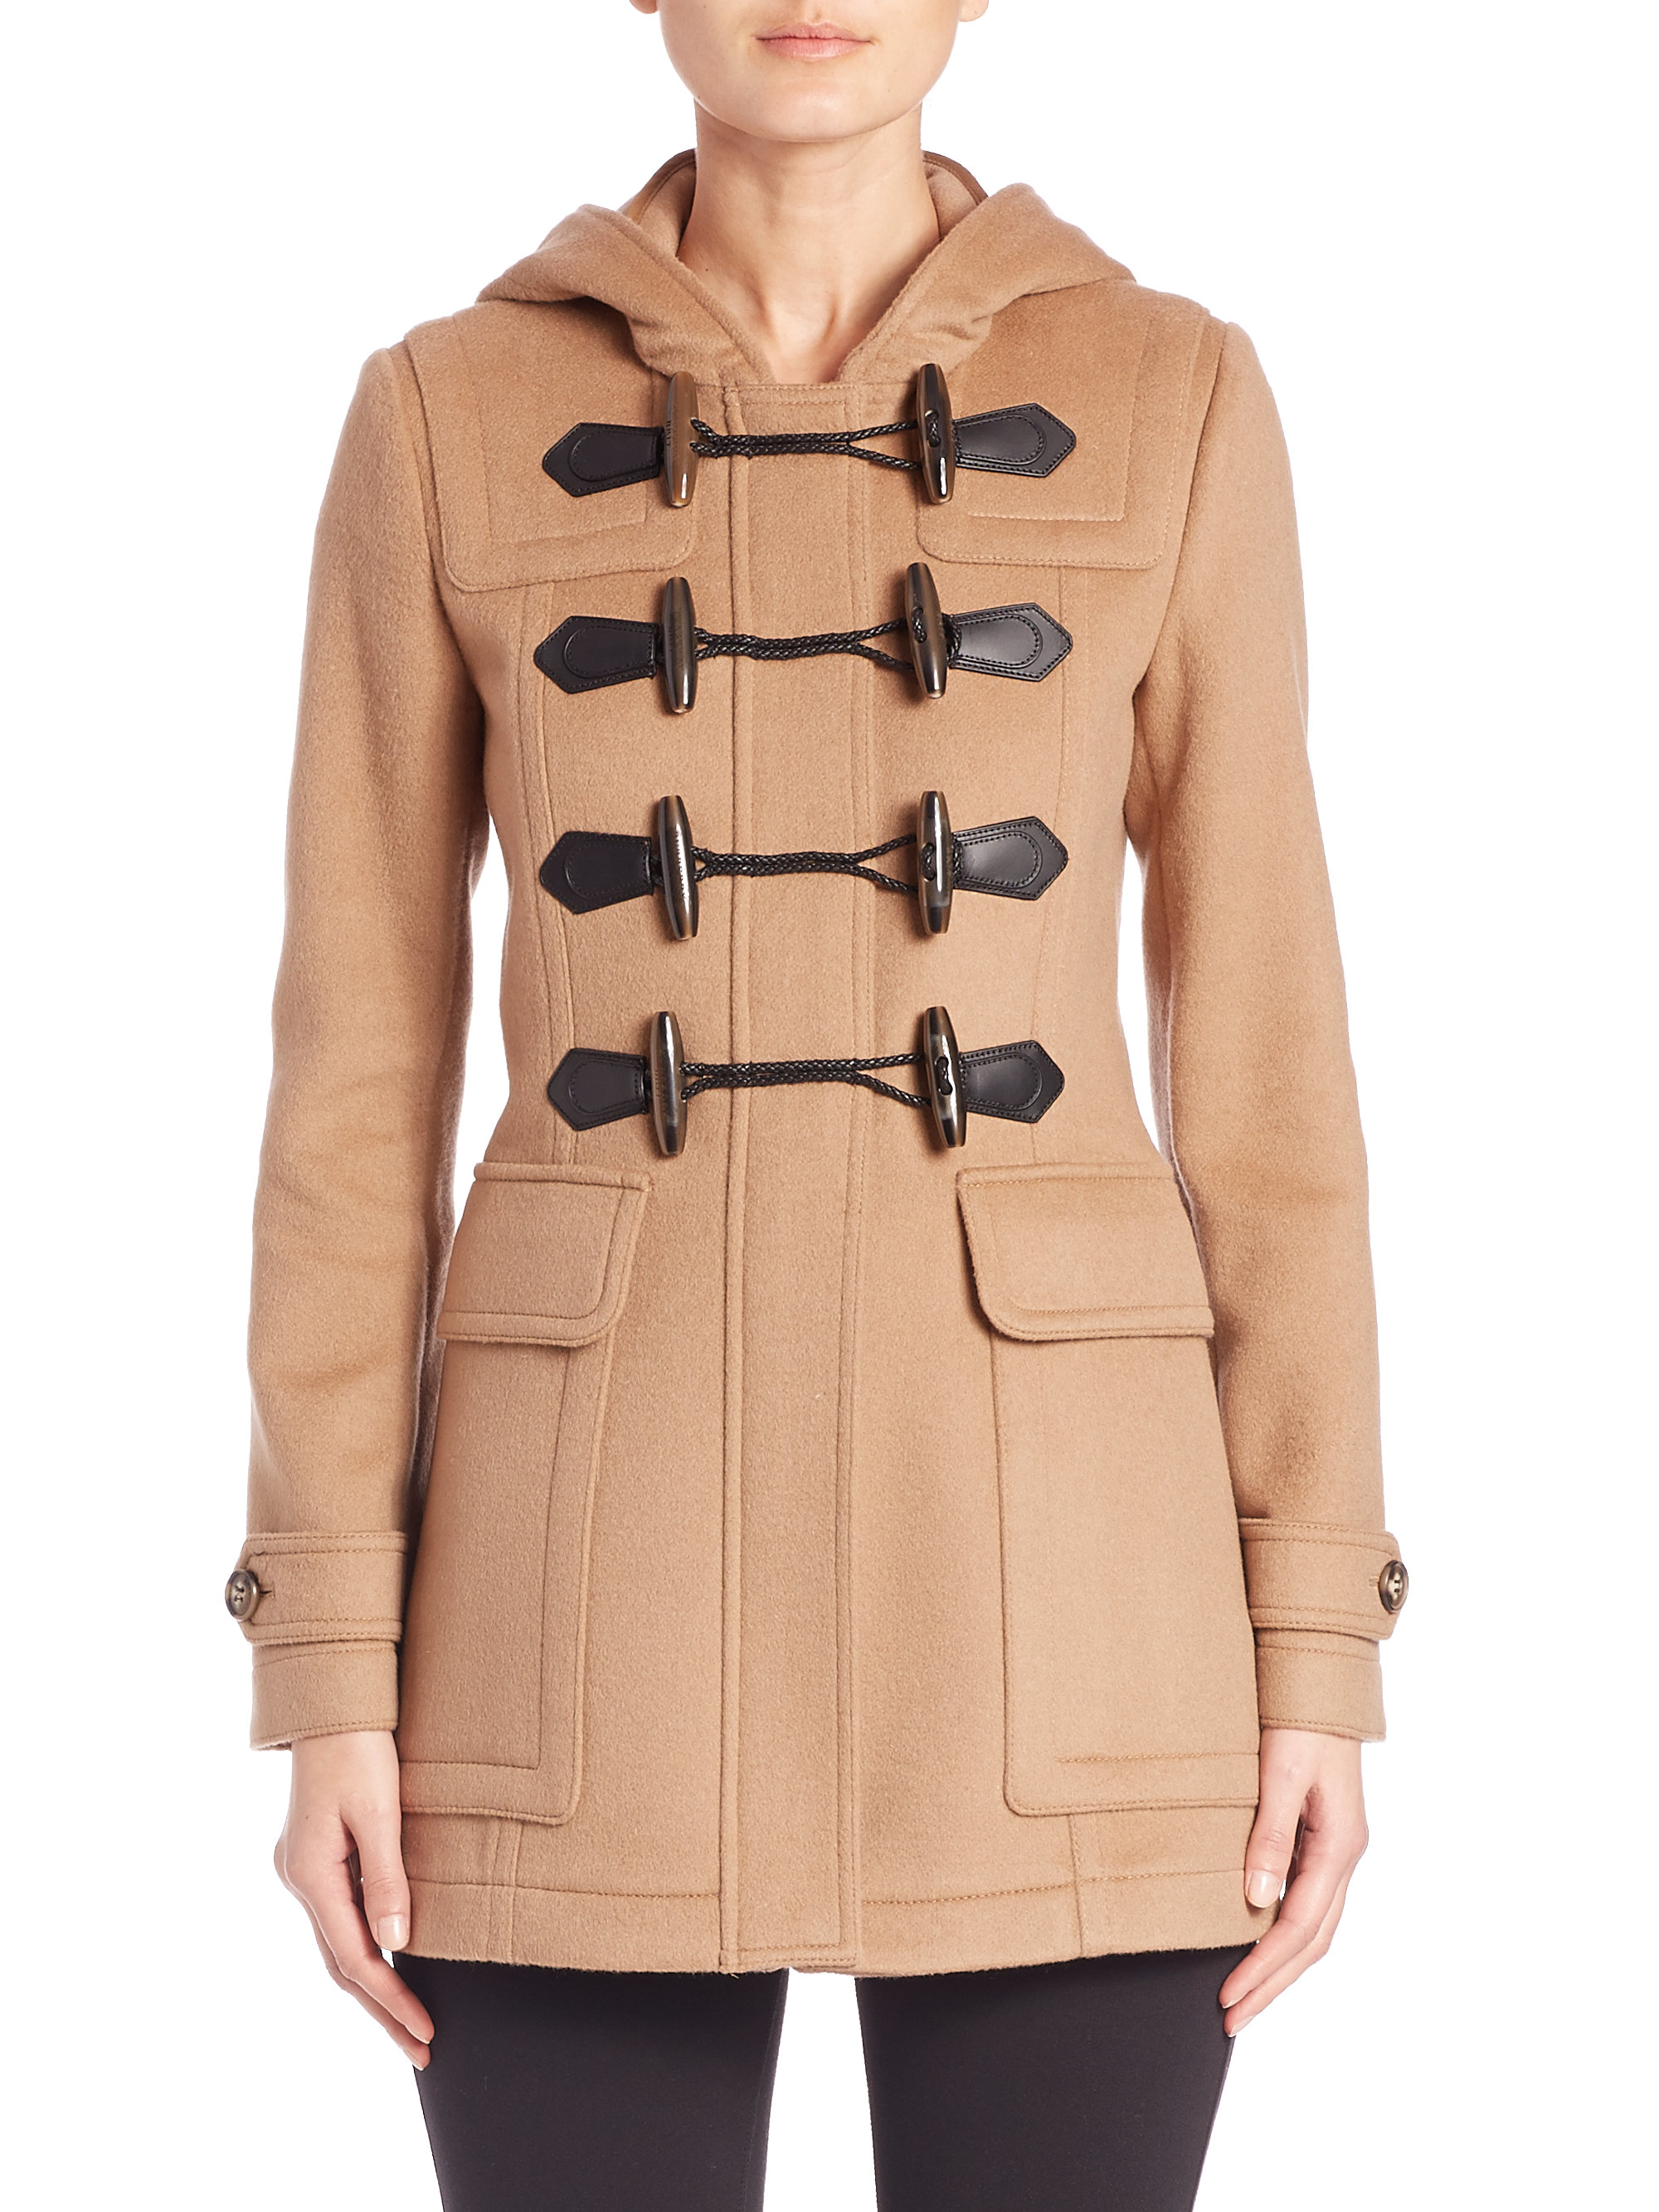 Burberry Blackwell Duffle Coat in Natural | Lyst